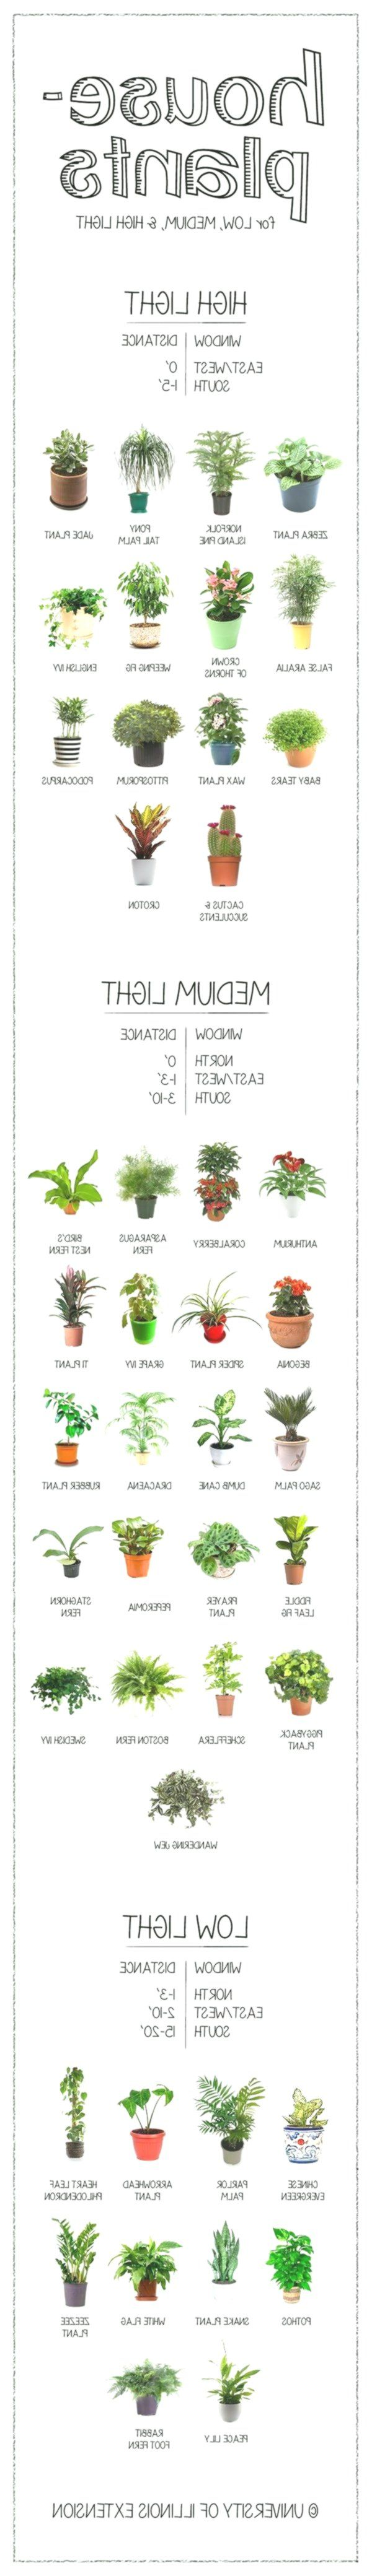 Gardening Cheat Sheets  #haircutideas #makeup #personalcelebration #diet #nutrition #quotes #genres...